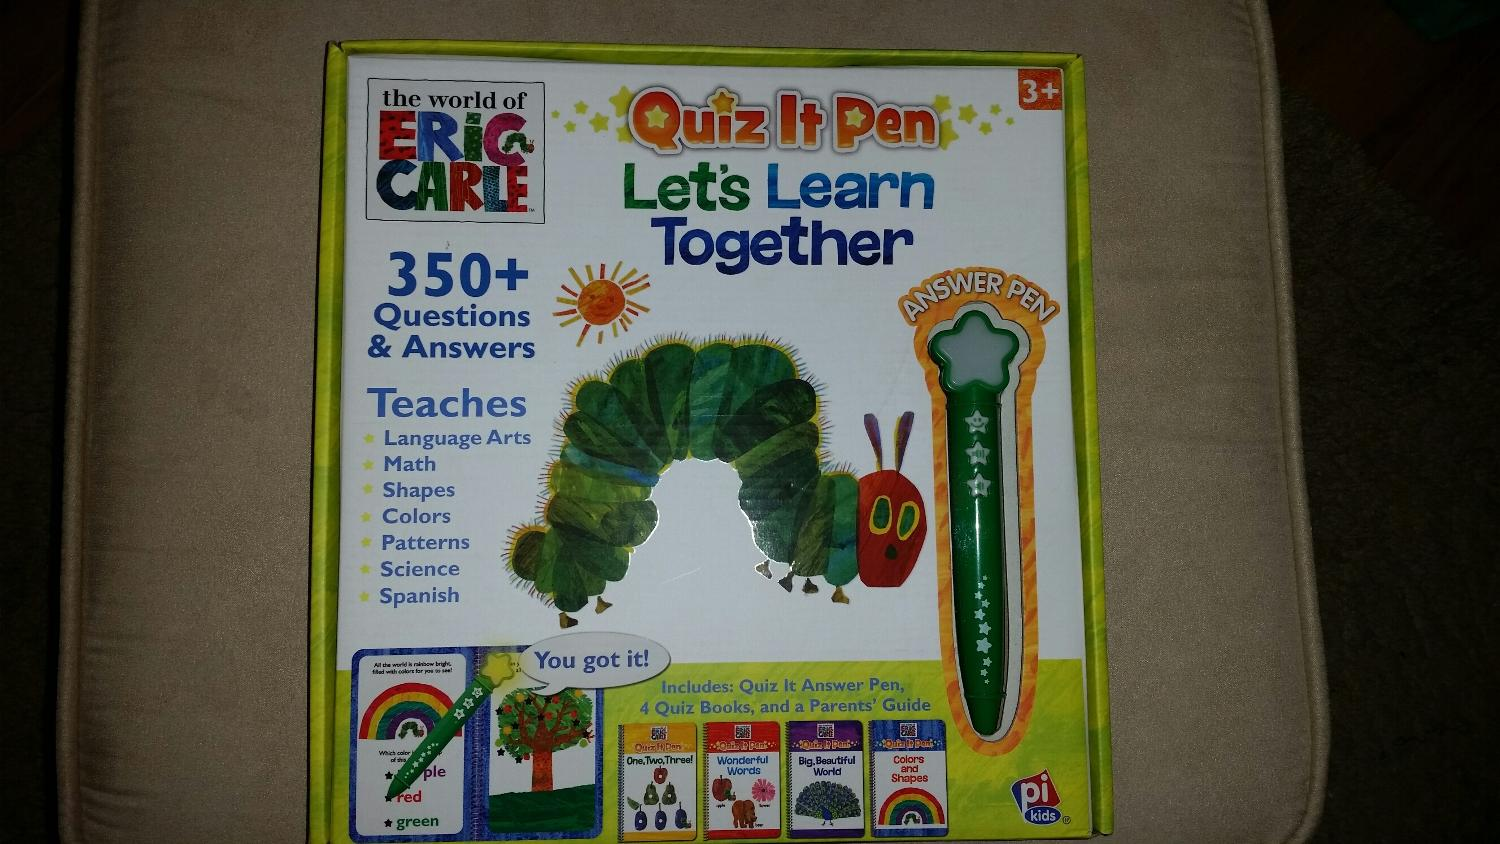 EUC Eric Carle Quiz it Pen Let's Learn Together